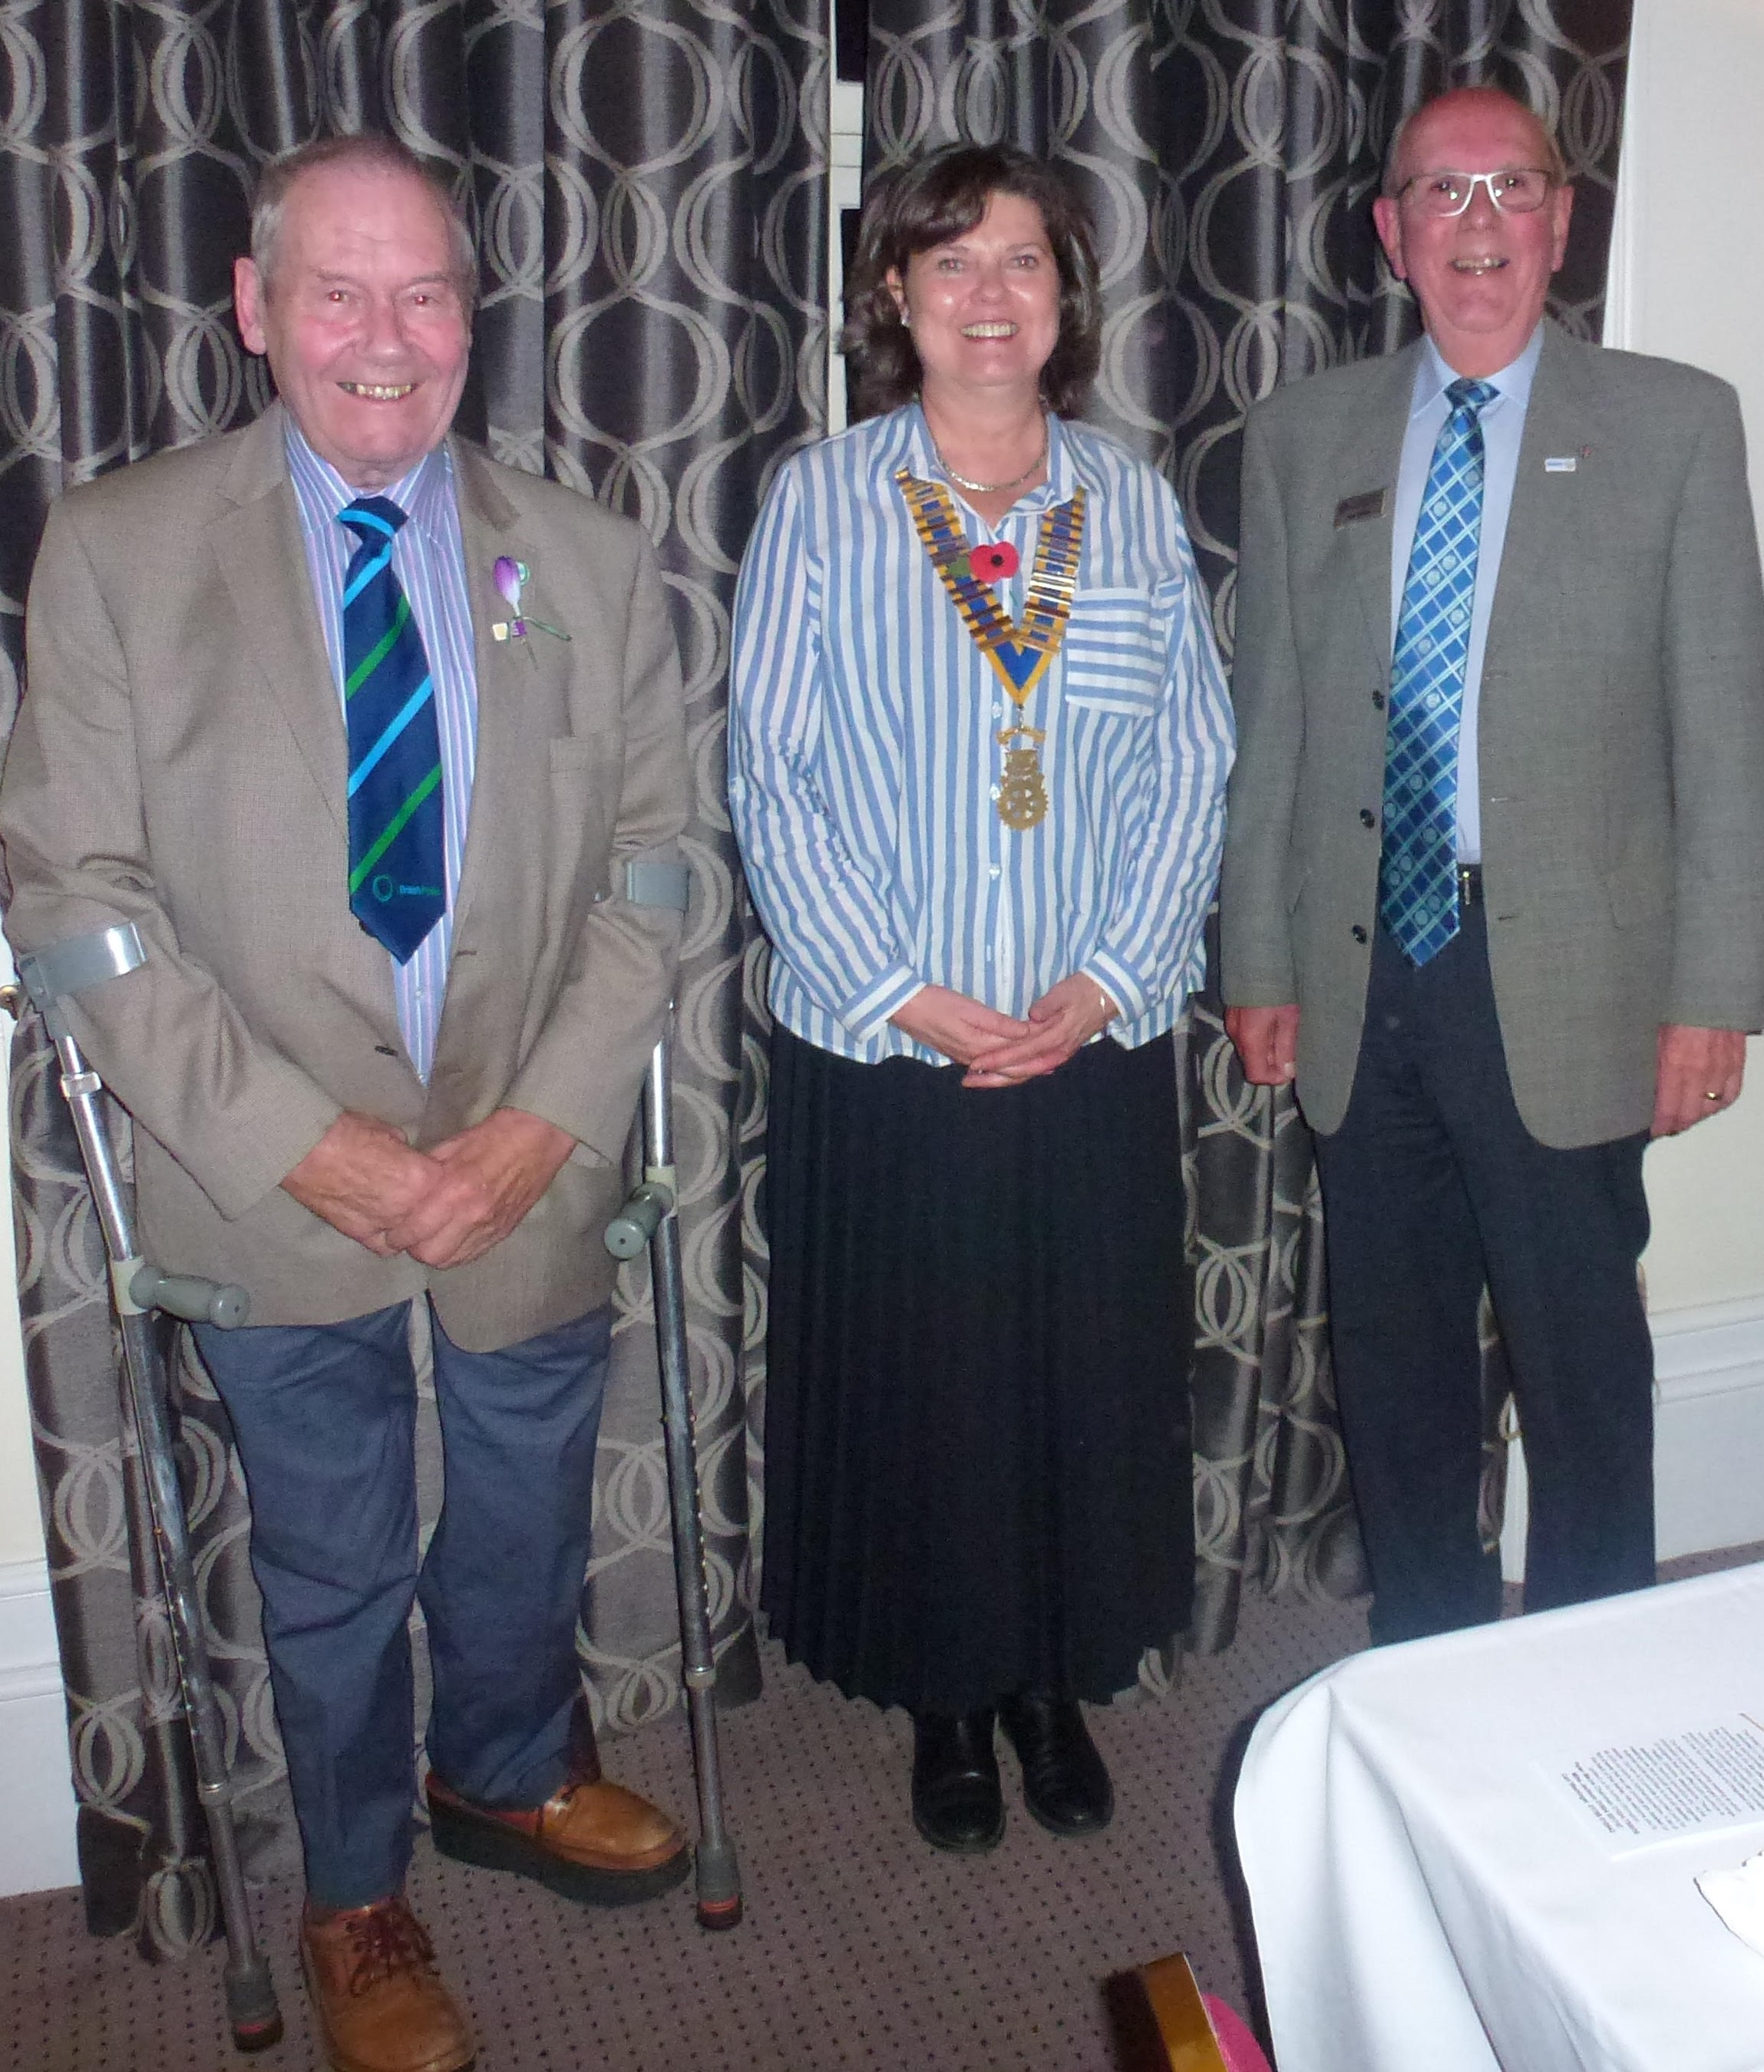 Mike Jackson of BPF - NH, President Andrea Lord (Towcester Rotary Club), Rtn Dick Parsley of Wellingborough Hatton Rotary Club